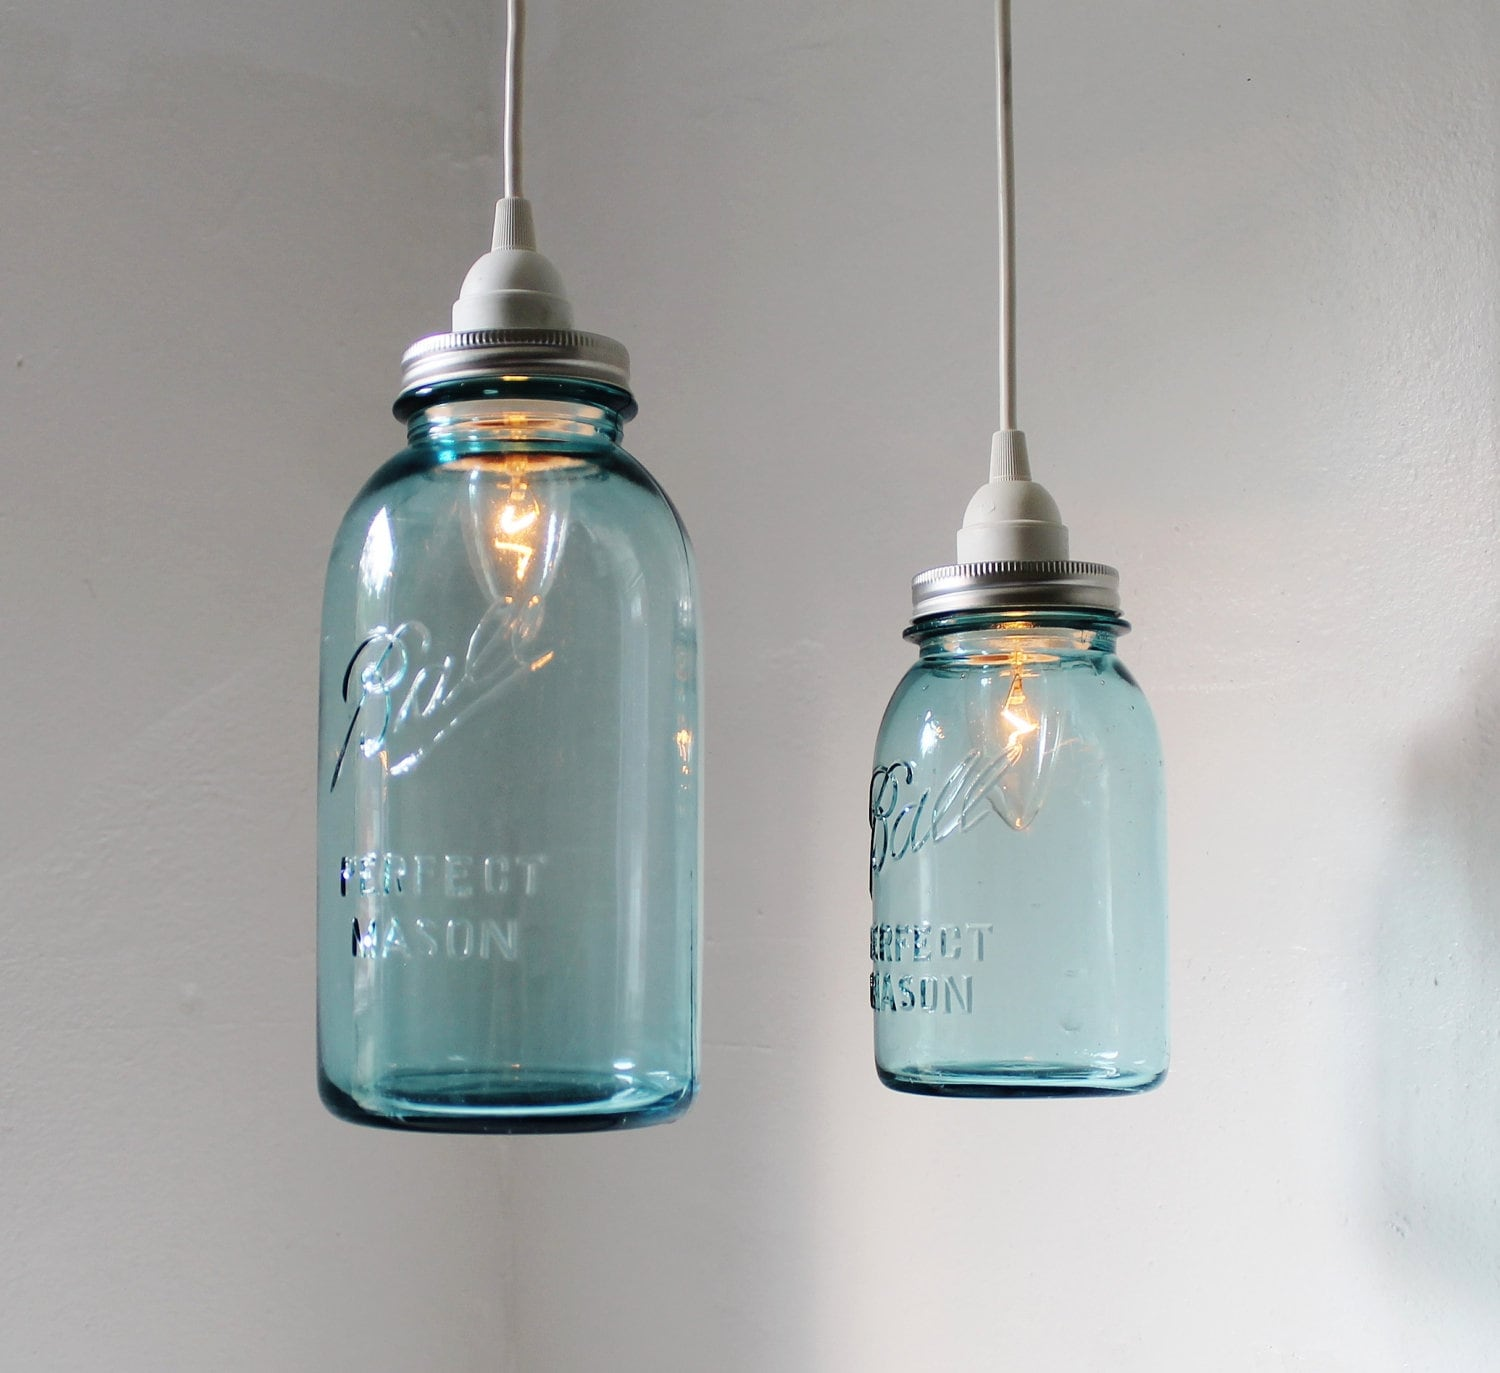 Sea glass mason jar pendant lights set of 2 hanging antique zoom arubaitofo Gallery